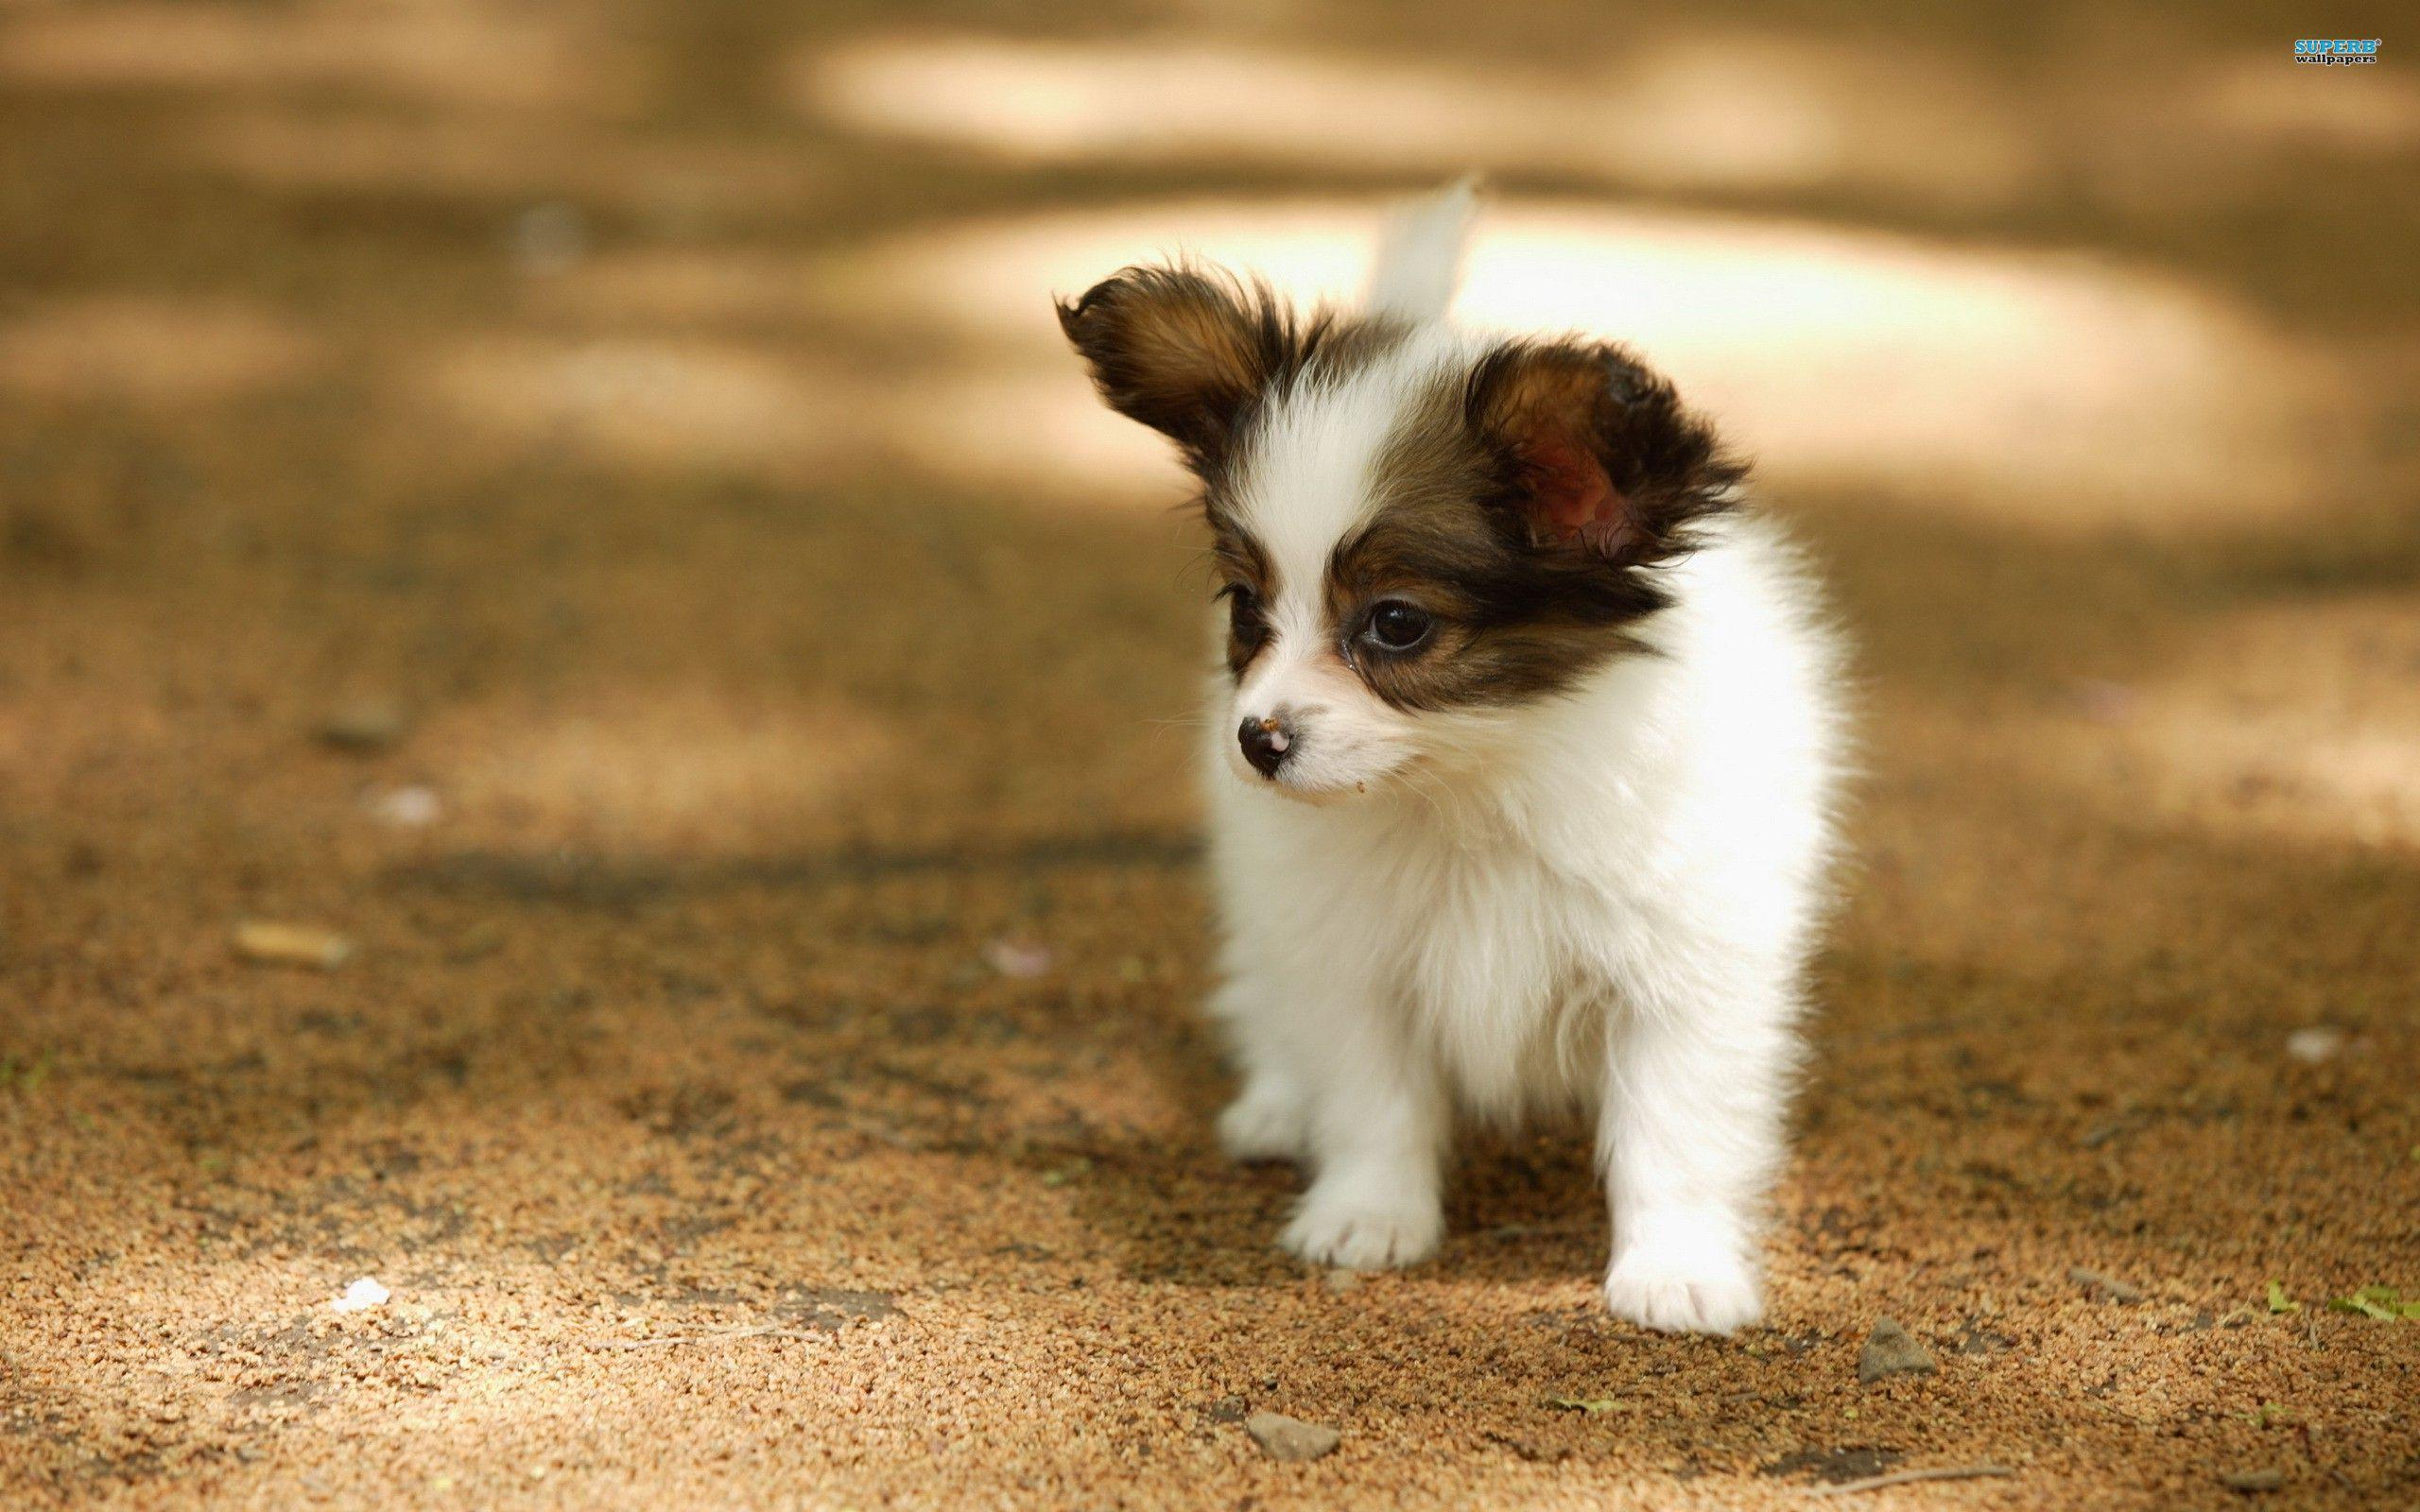 Best Puppy Brown Adorable Dog - Adorable-Papillon-Puppy-HD-Wallpaper  Picture_522035  .jpg